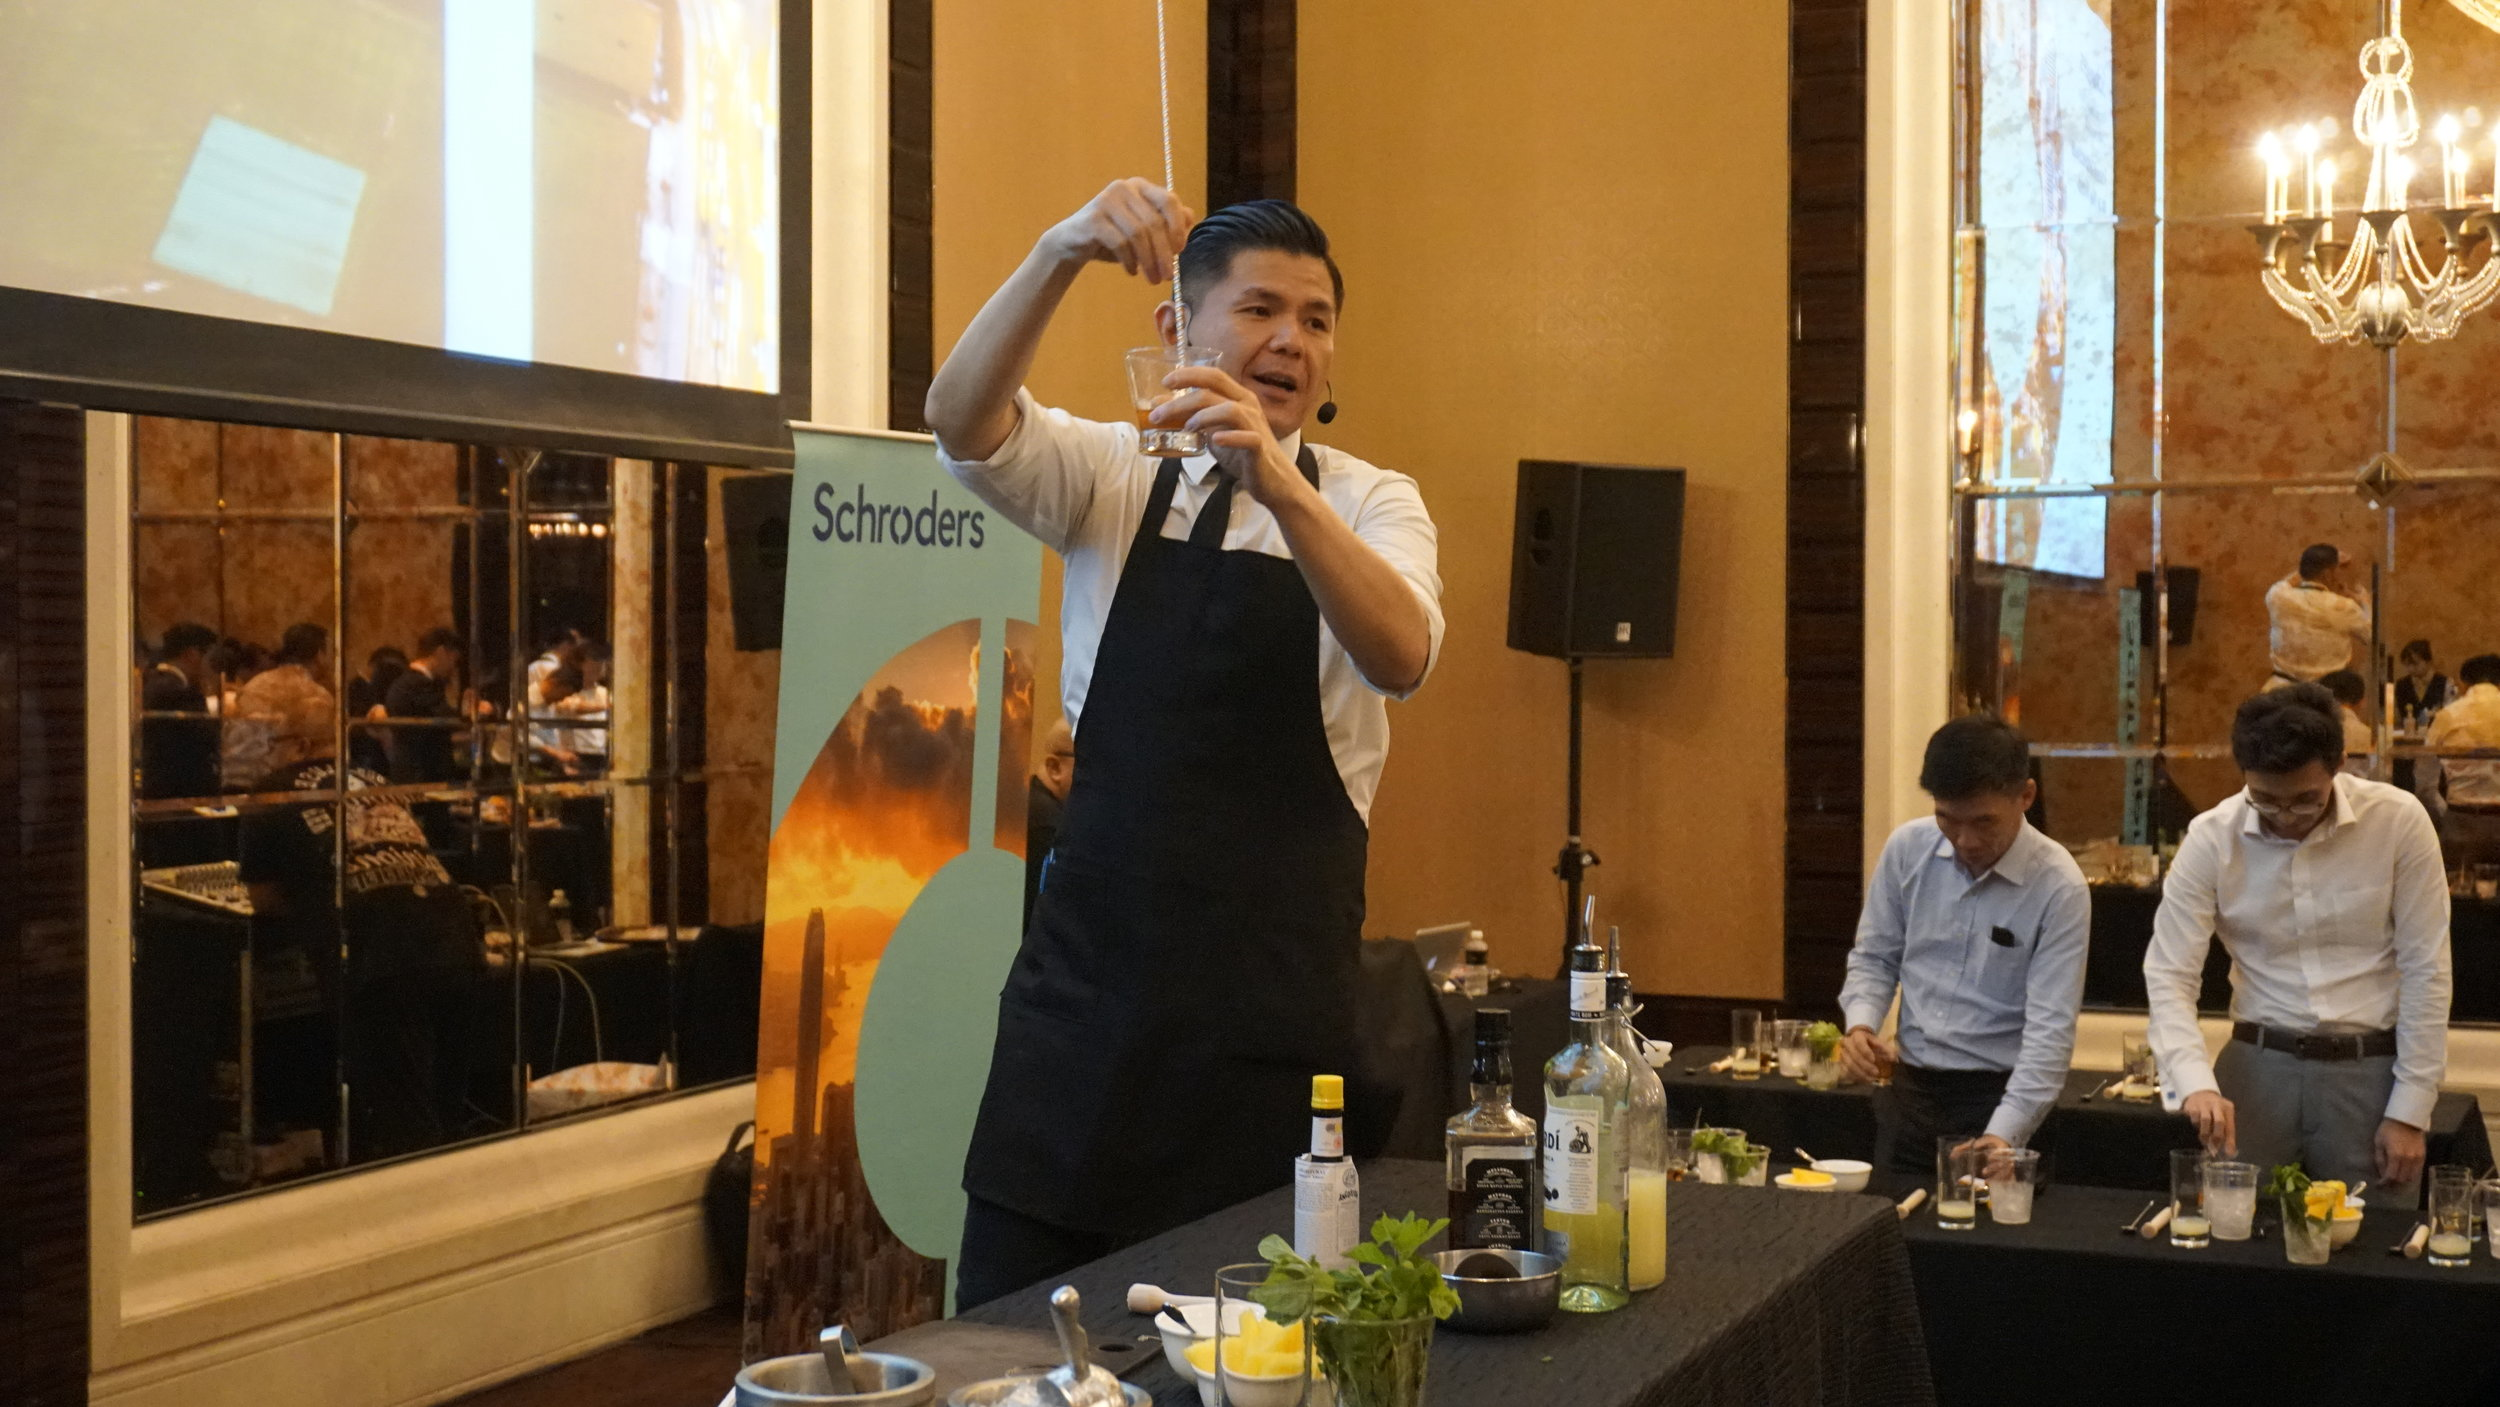 StRegis_Scholar_Mixology_Workshop_00010.JPG